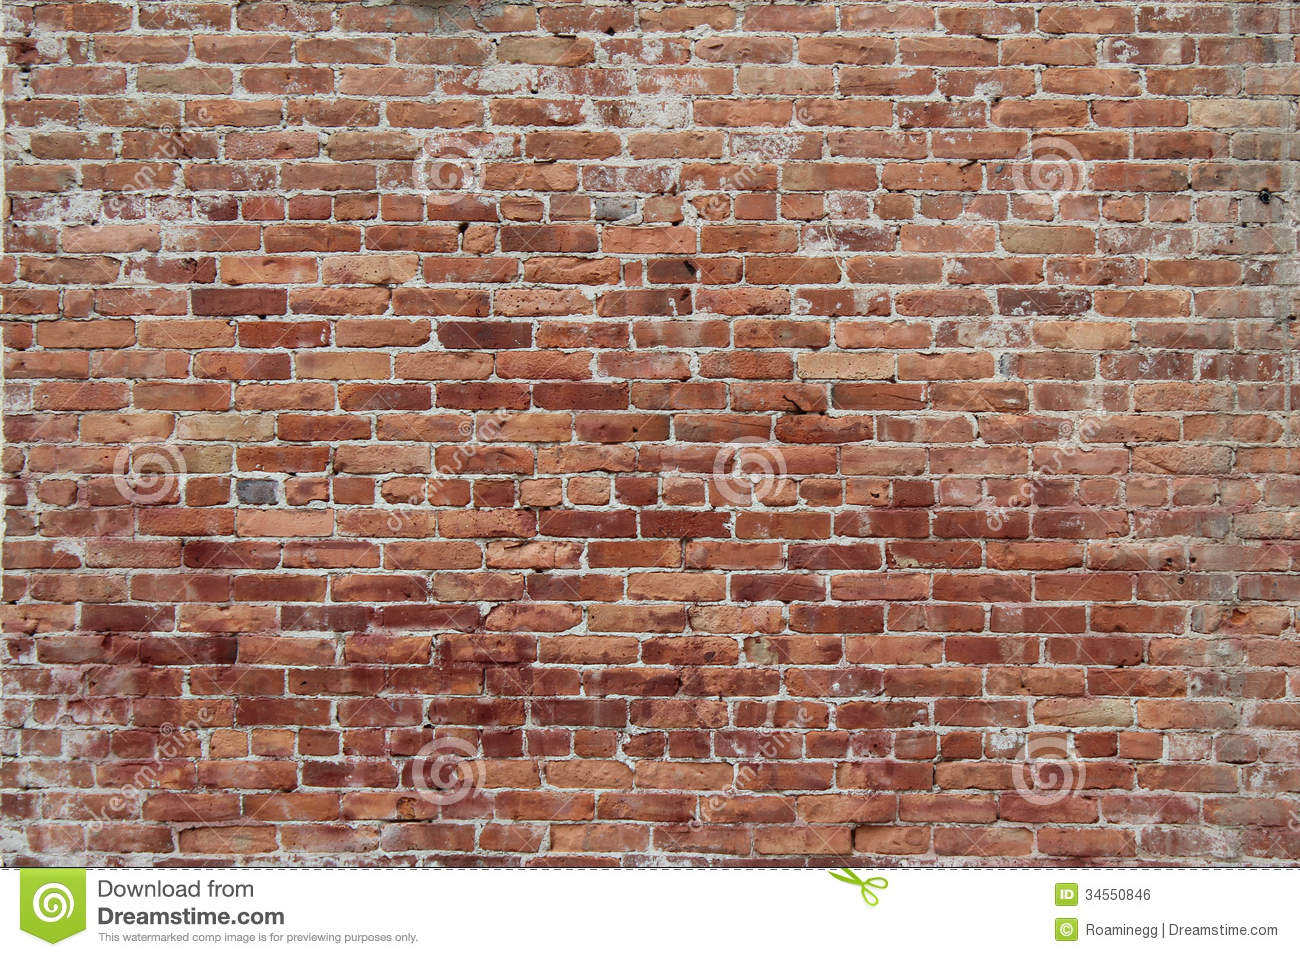 Rustic Brick Wall Decor : Brickwork royalty free stock image